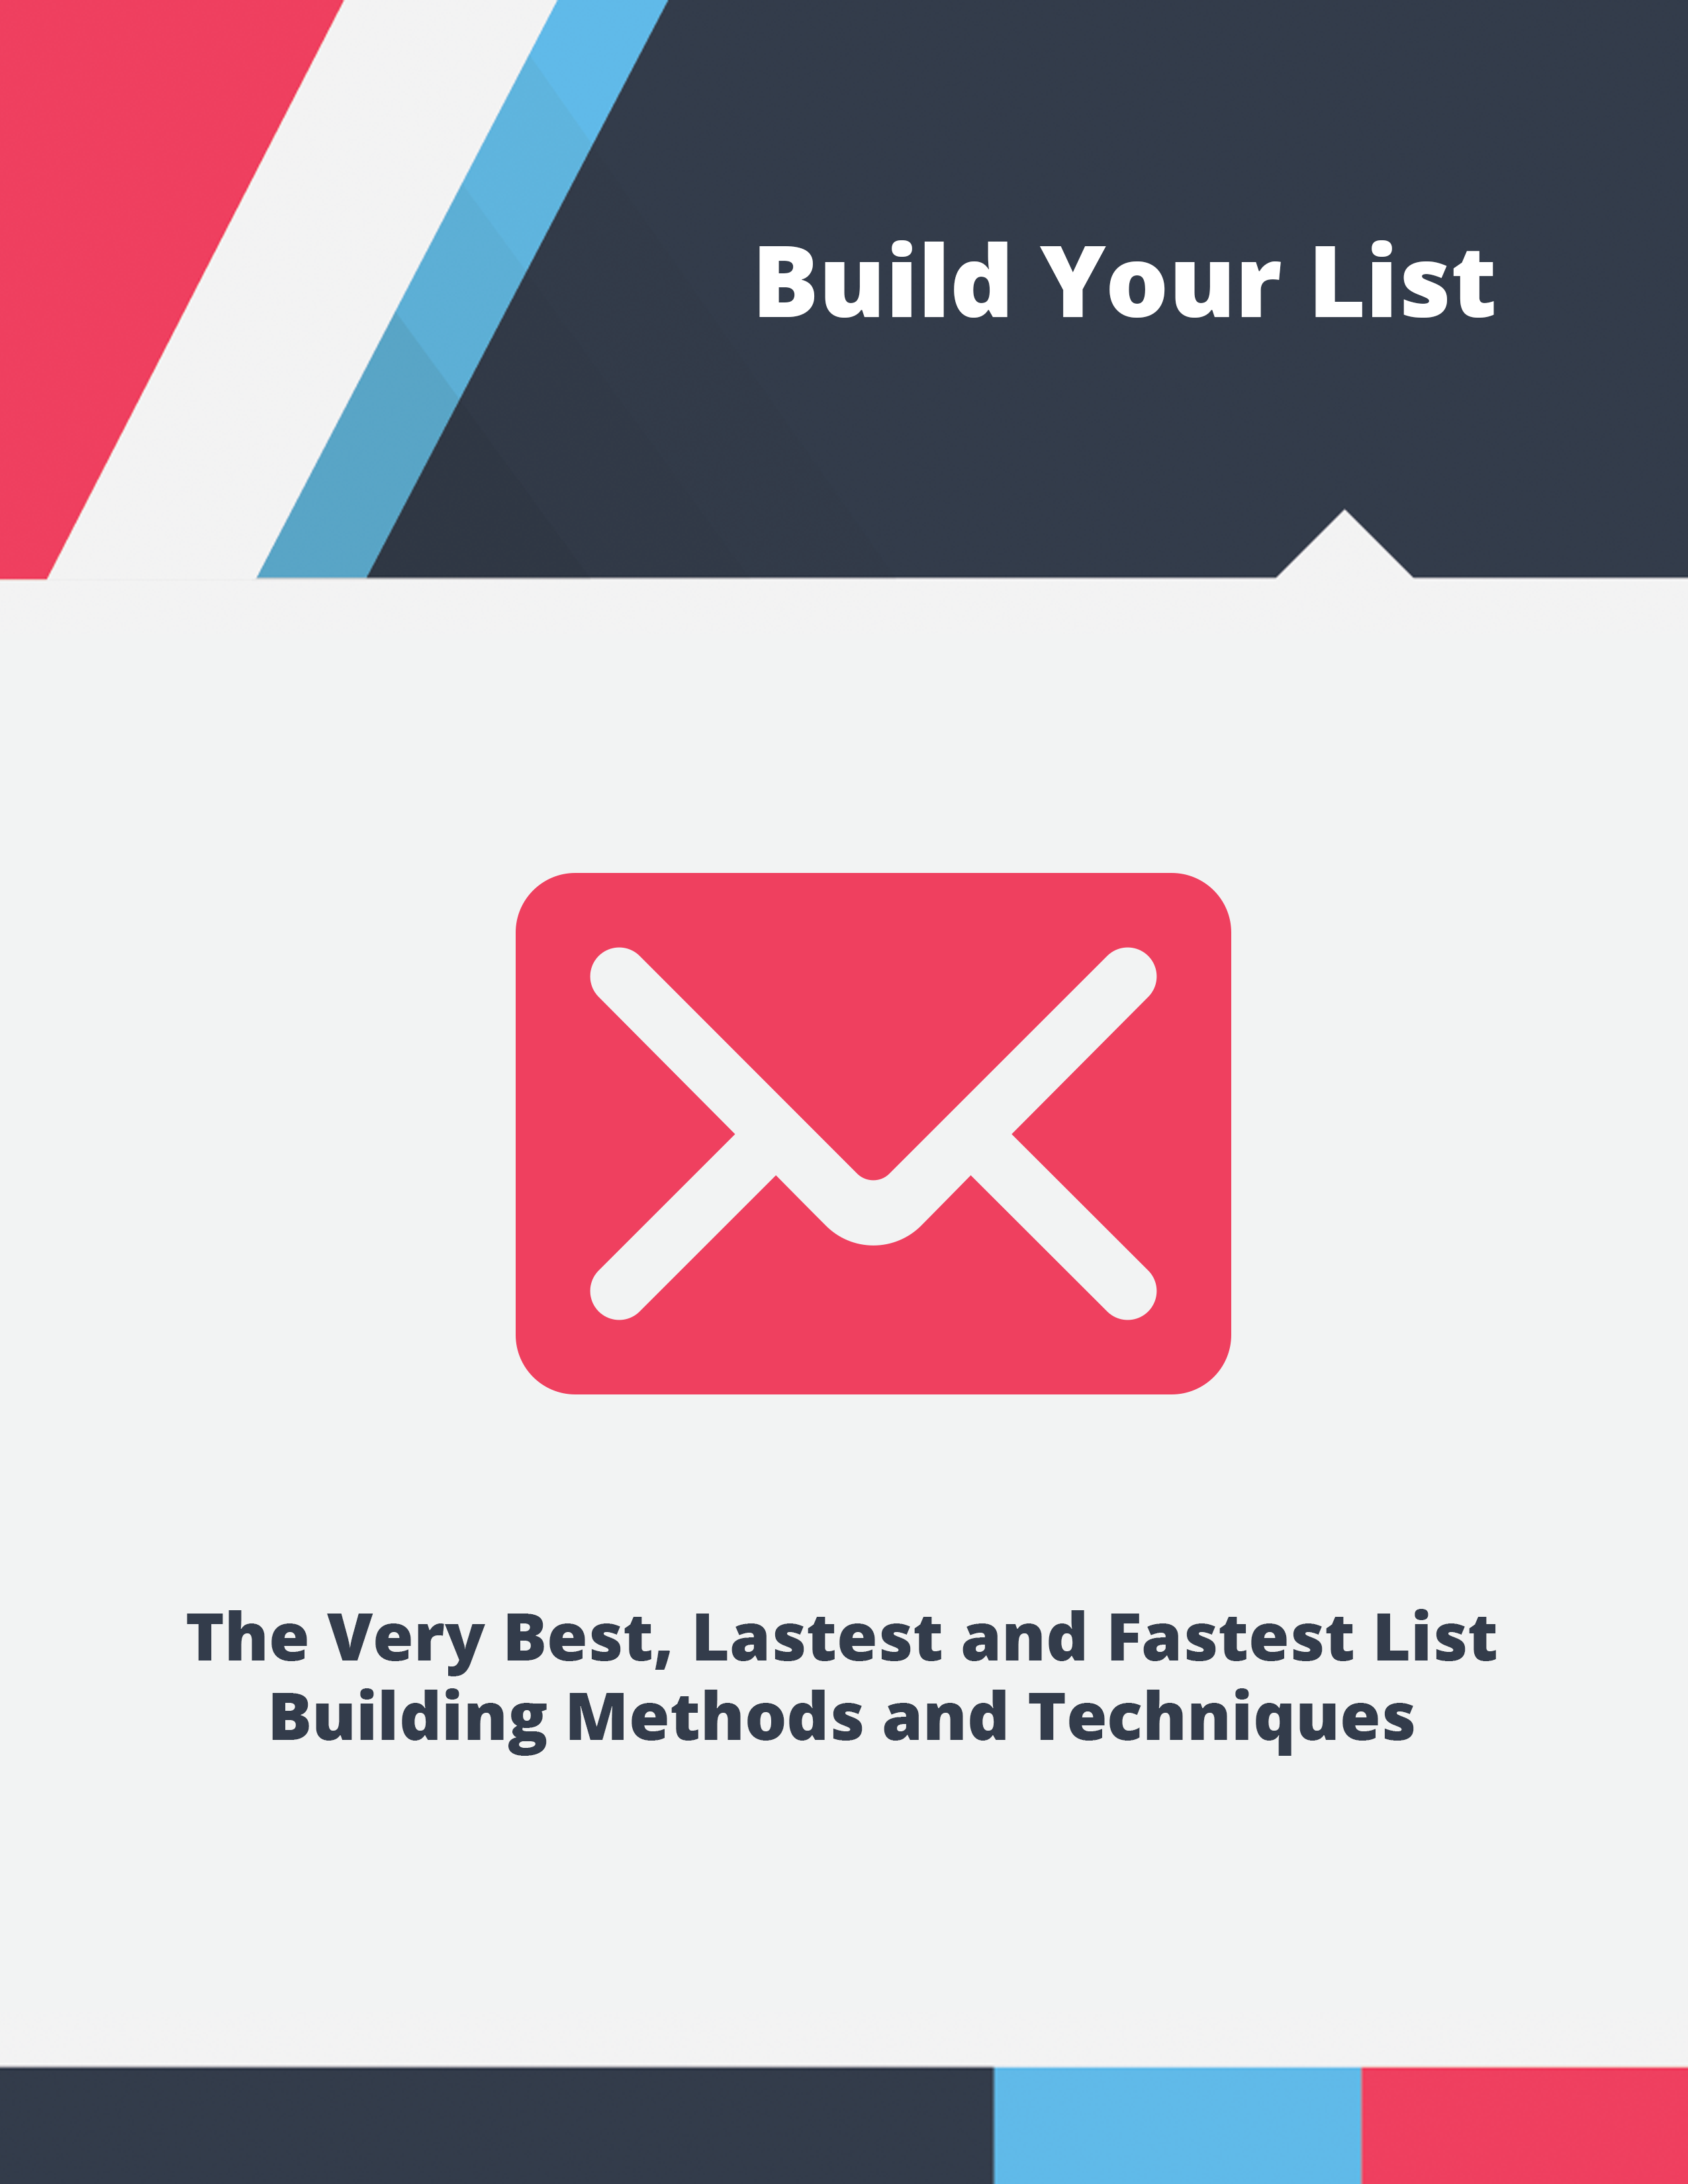 Build your list - The every best, latest and fastest list building methods and techniques's Book Image